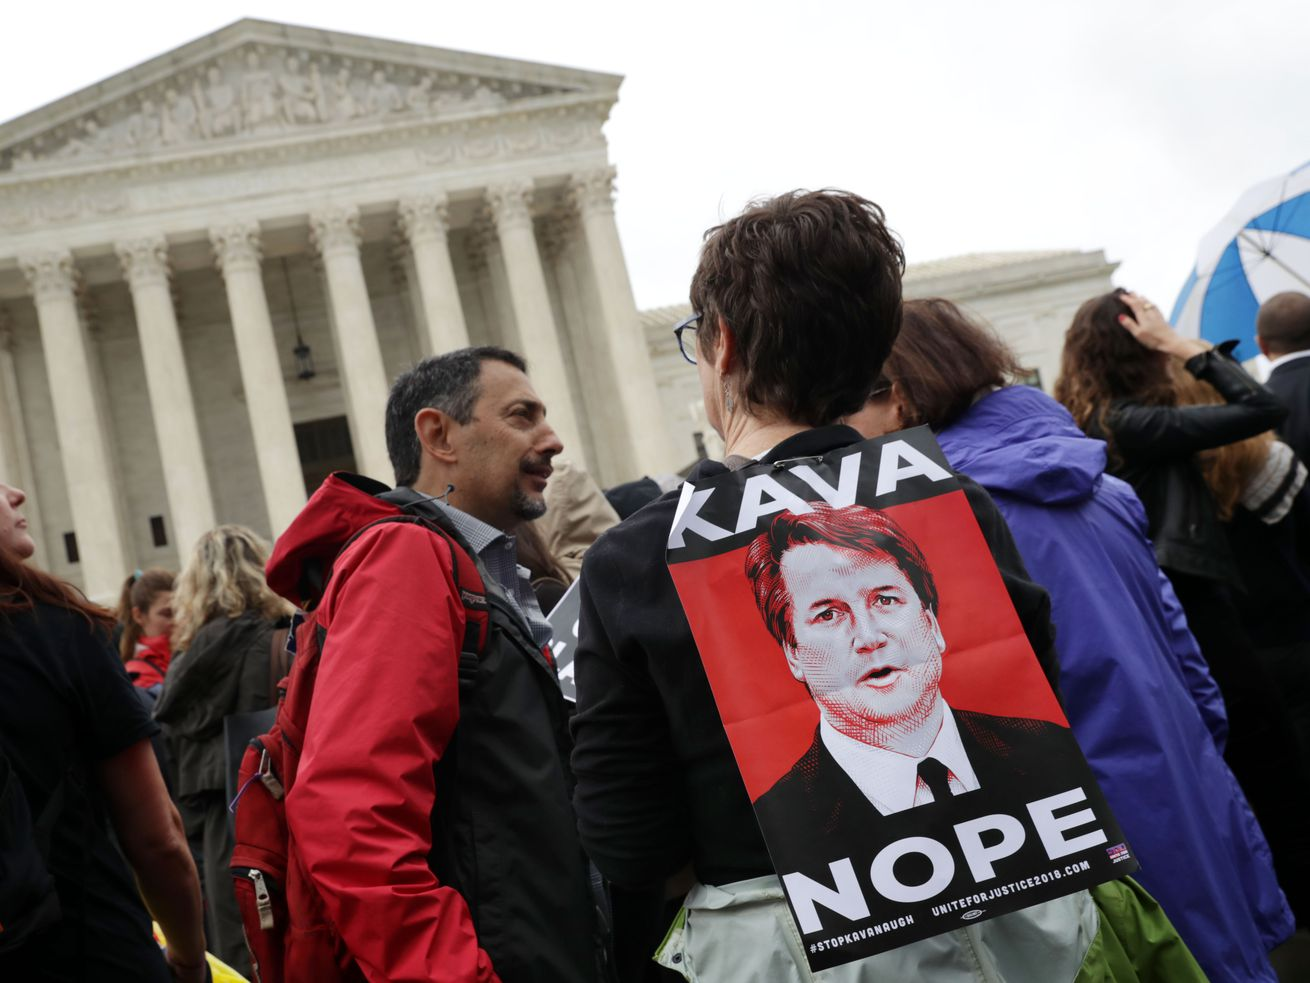 Protesters rally in front of the Supreme Court while demonstrating against the confirmation of Judge Brett Kavanaugh to the court on September 24, 2018.